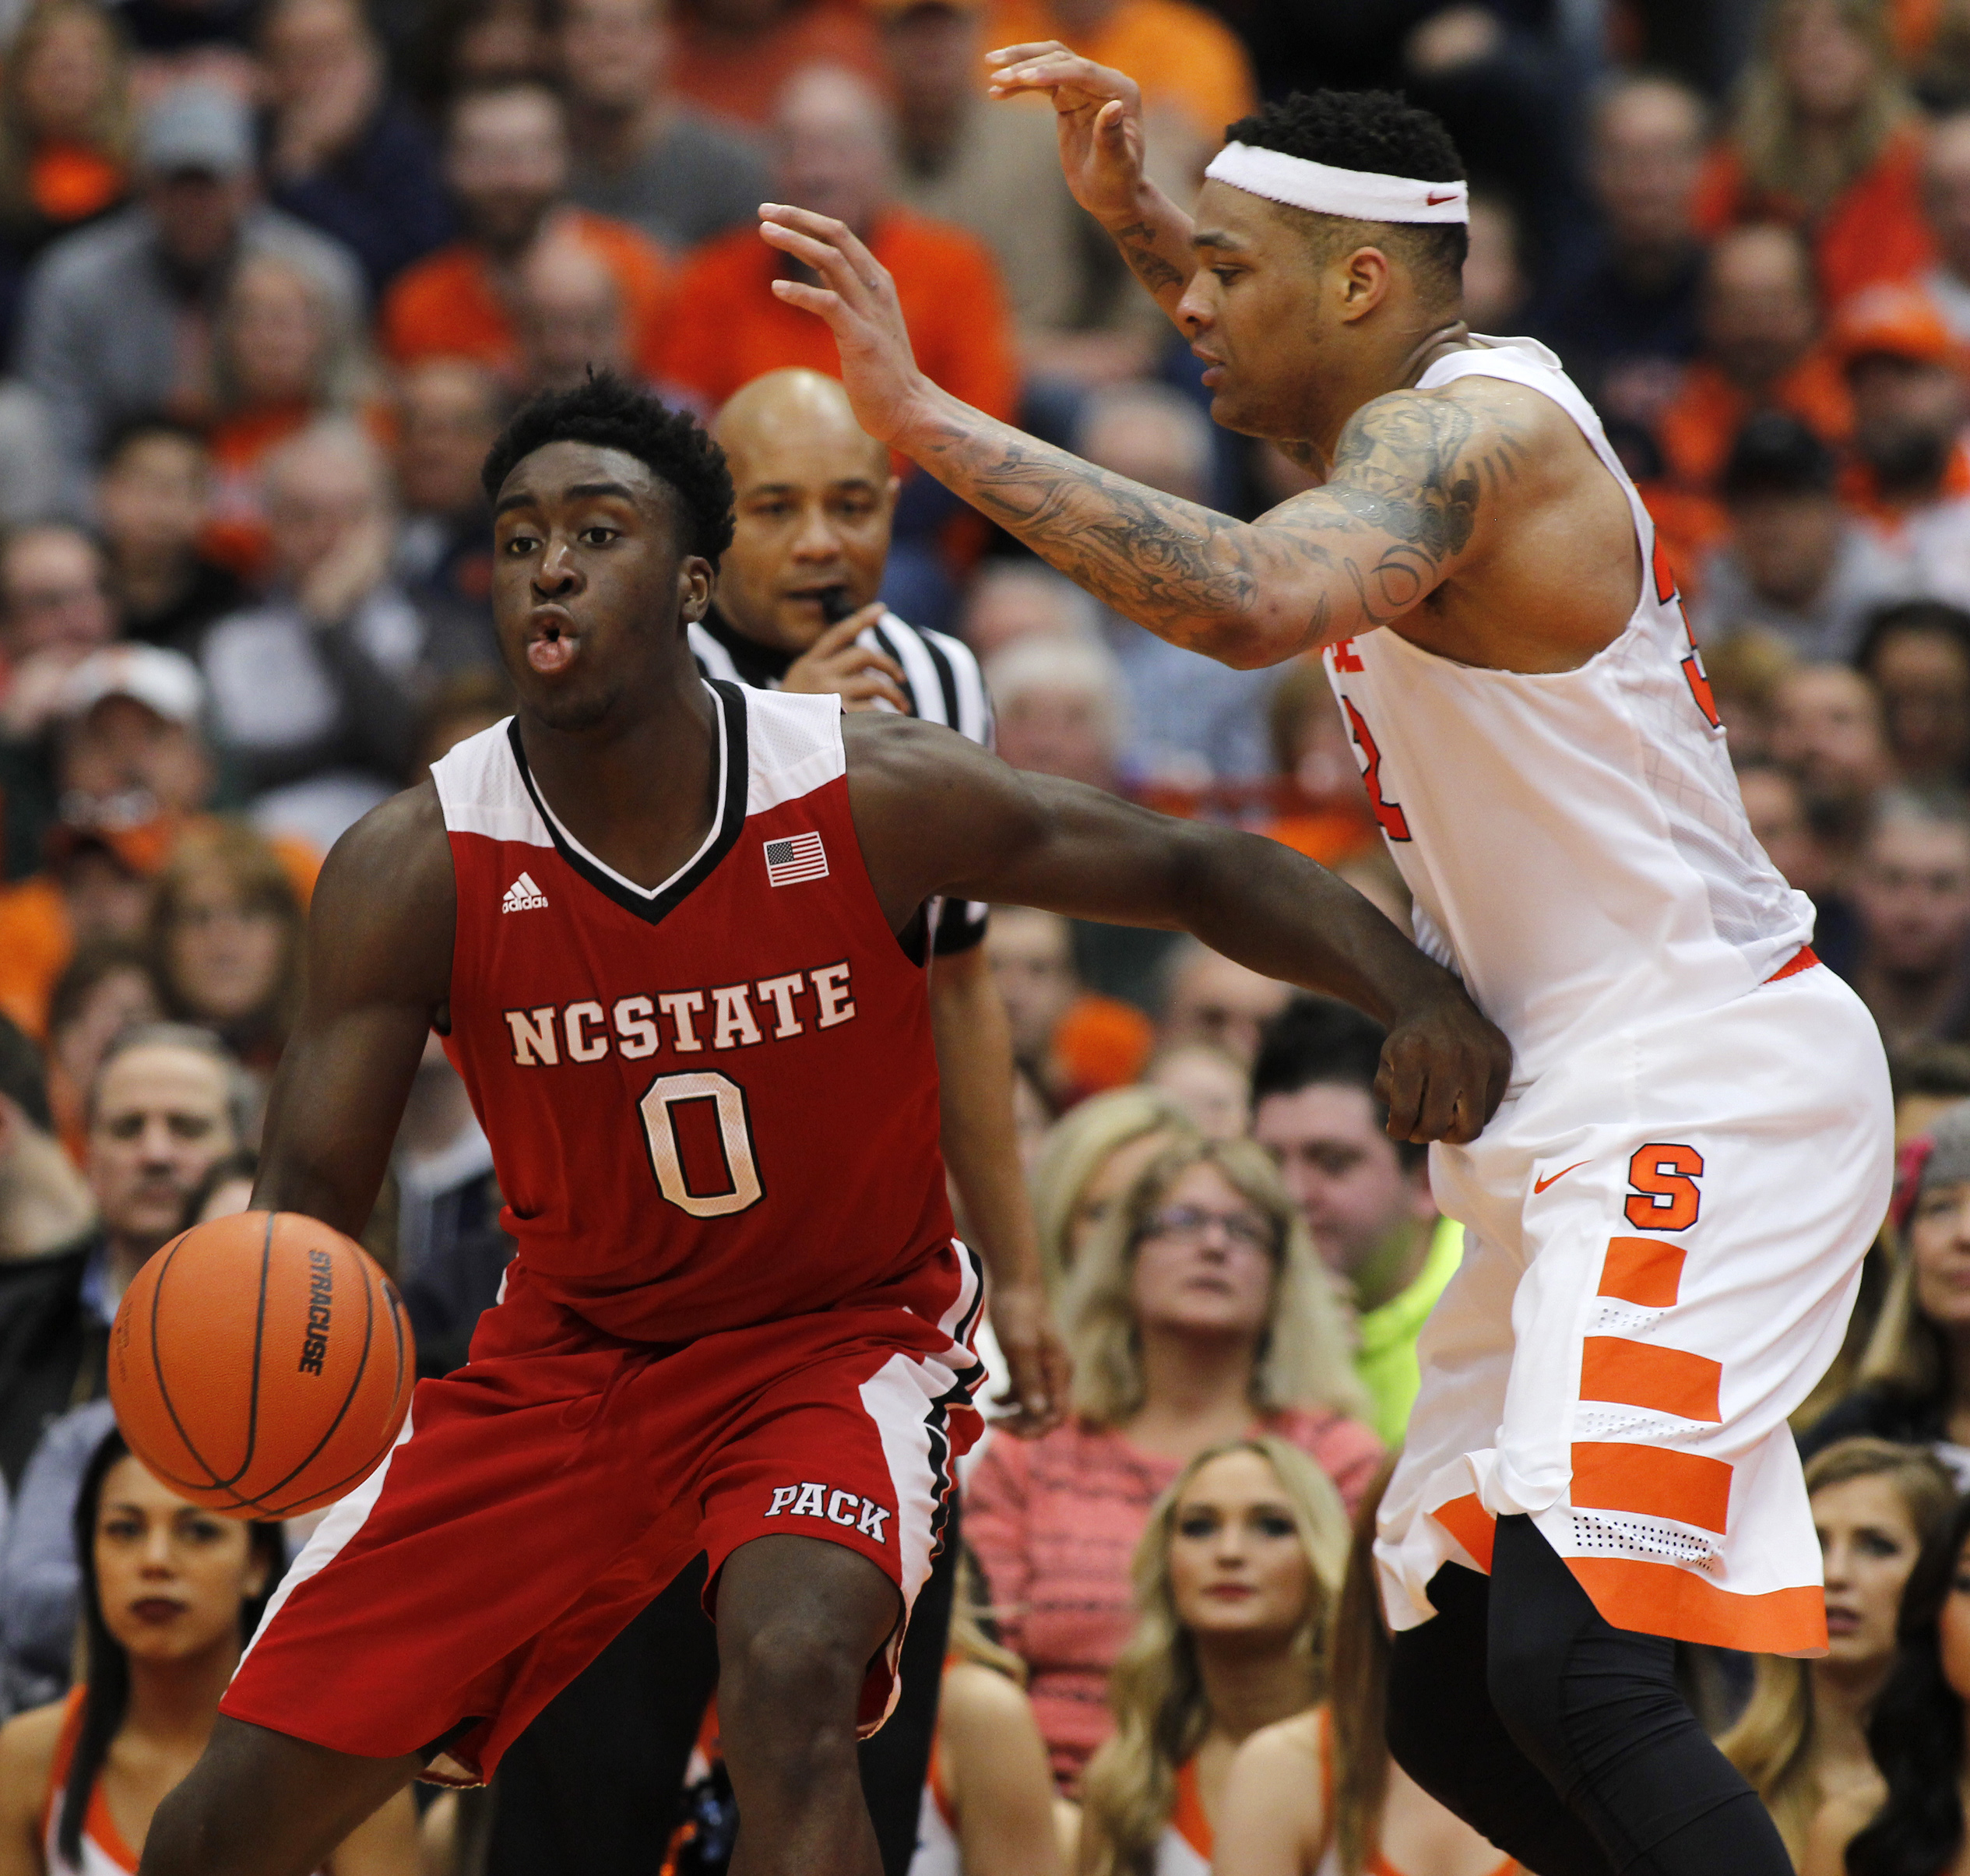 North Carolina State's Abdul Malik-Abu, left, dives to the basket against Syracuse's Dajuan Coleman in the second half of an NCAA college basketball game in Syracuse, N.Y., Saturday, Feb. 27, 2016. Syracuse won 75-66. (AP Photo/Nick Lisi)